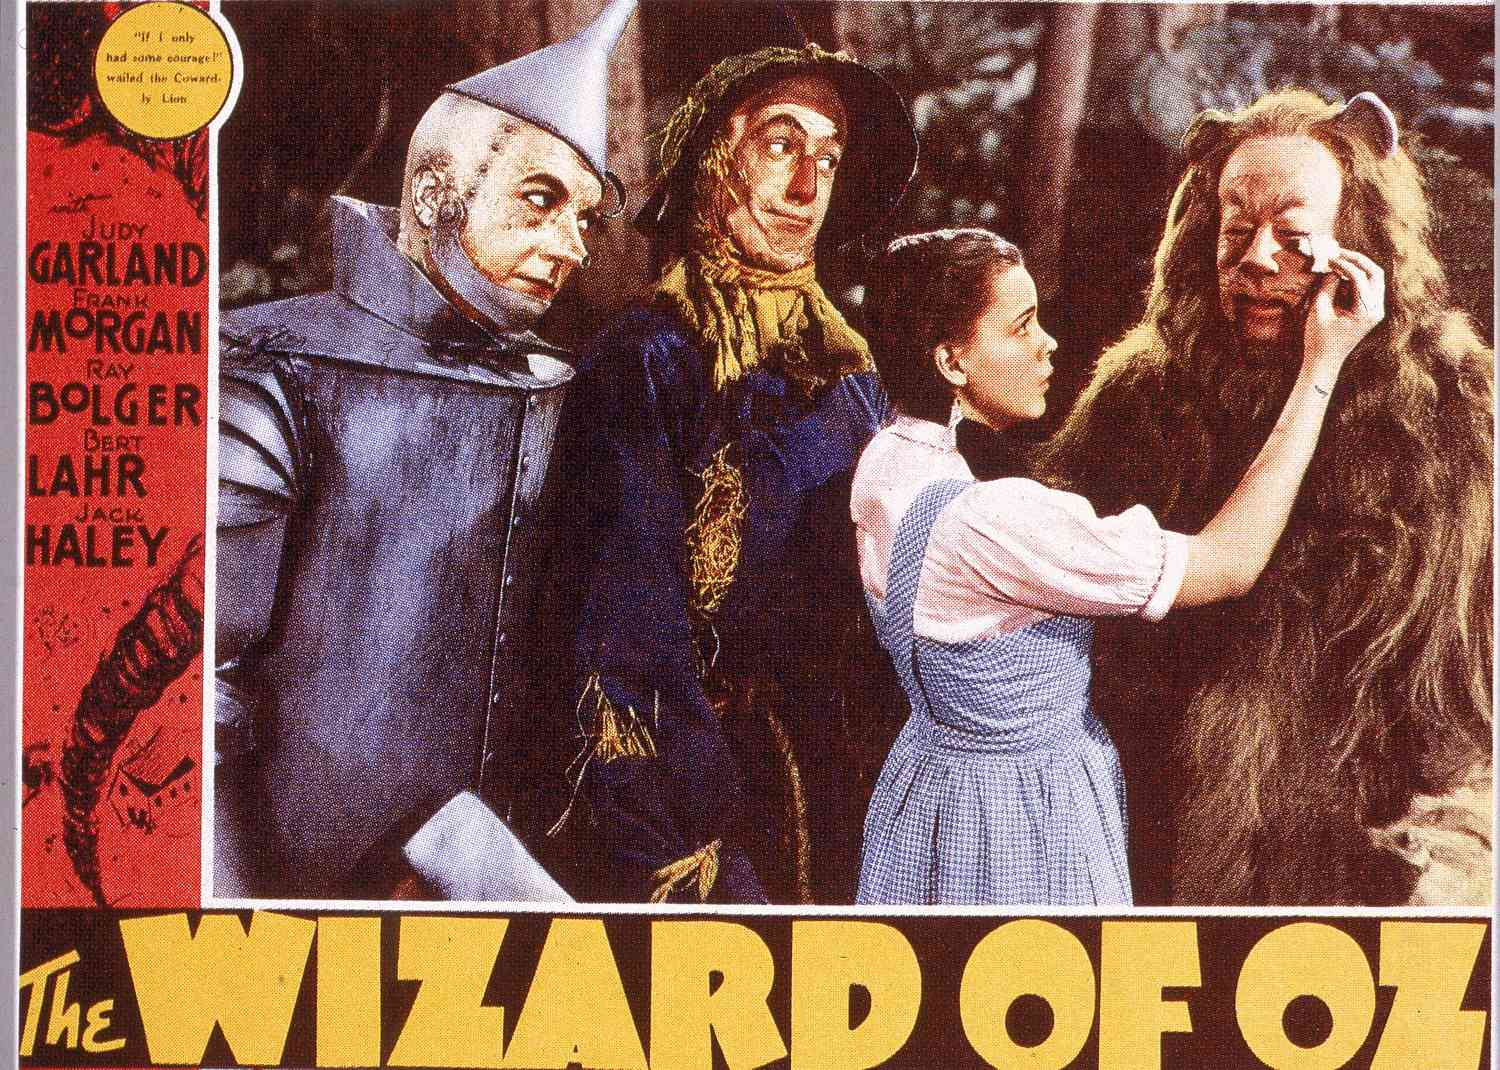 The cast of the 1939 MGM film 'The Wizard of Oz' depicted in a theatrical lobby card.